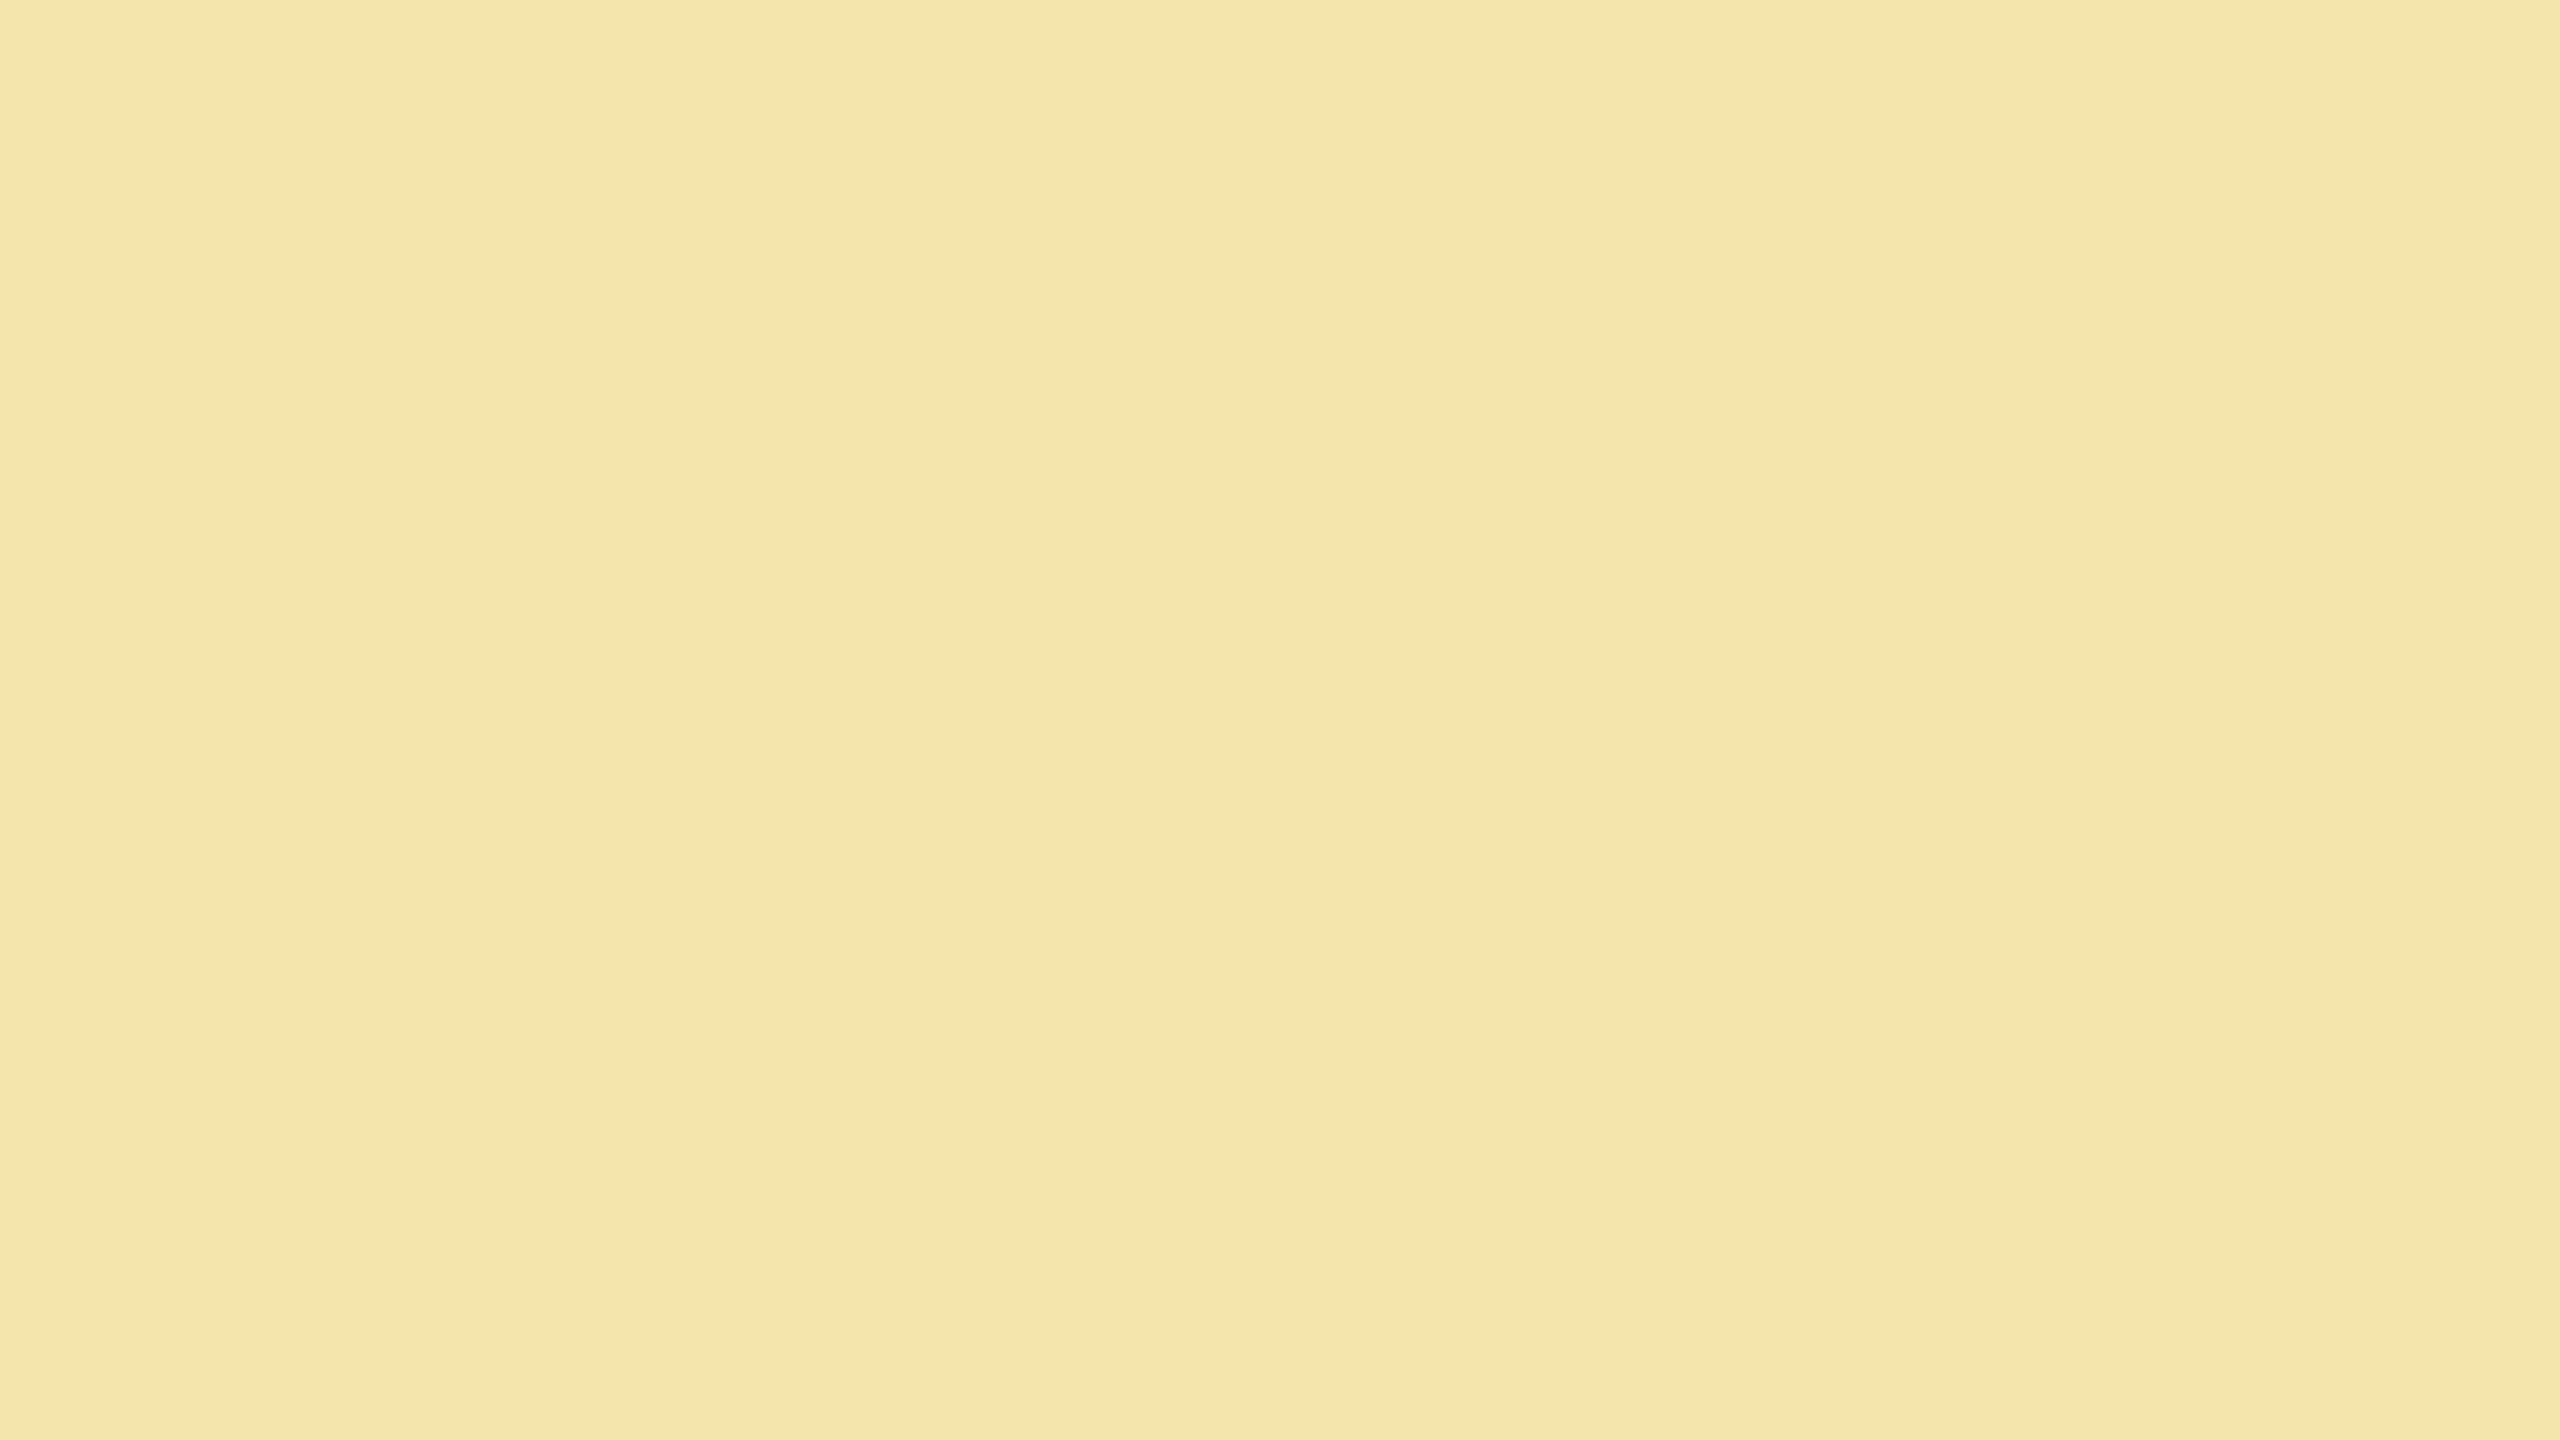 2560x1440 Medium Champagne Solid Color Background